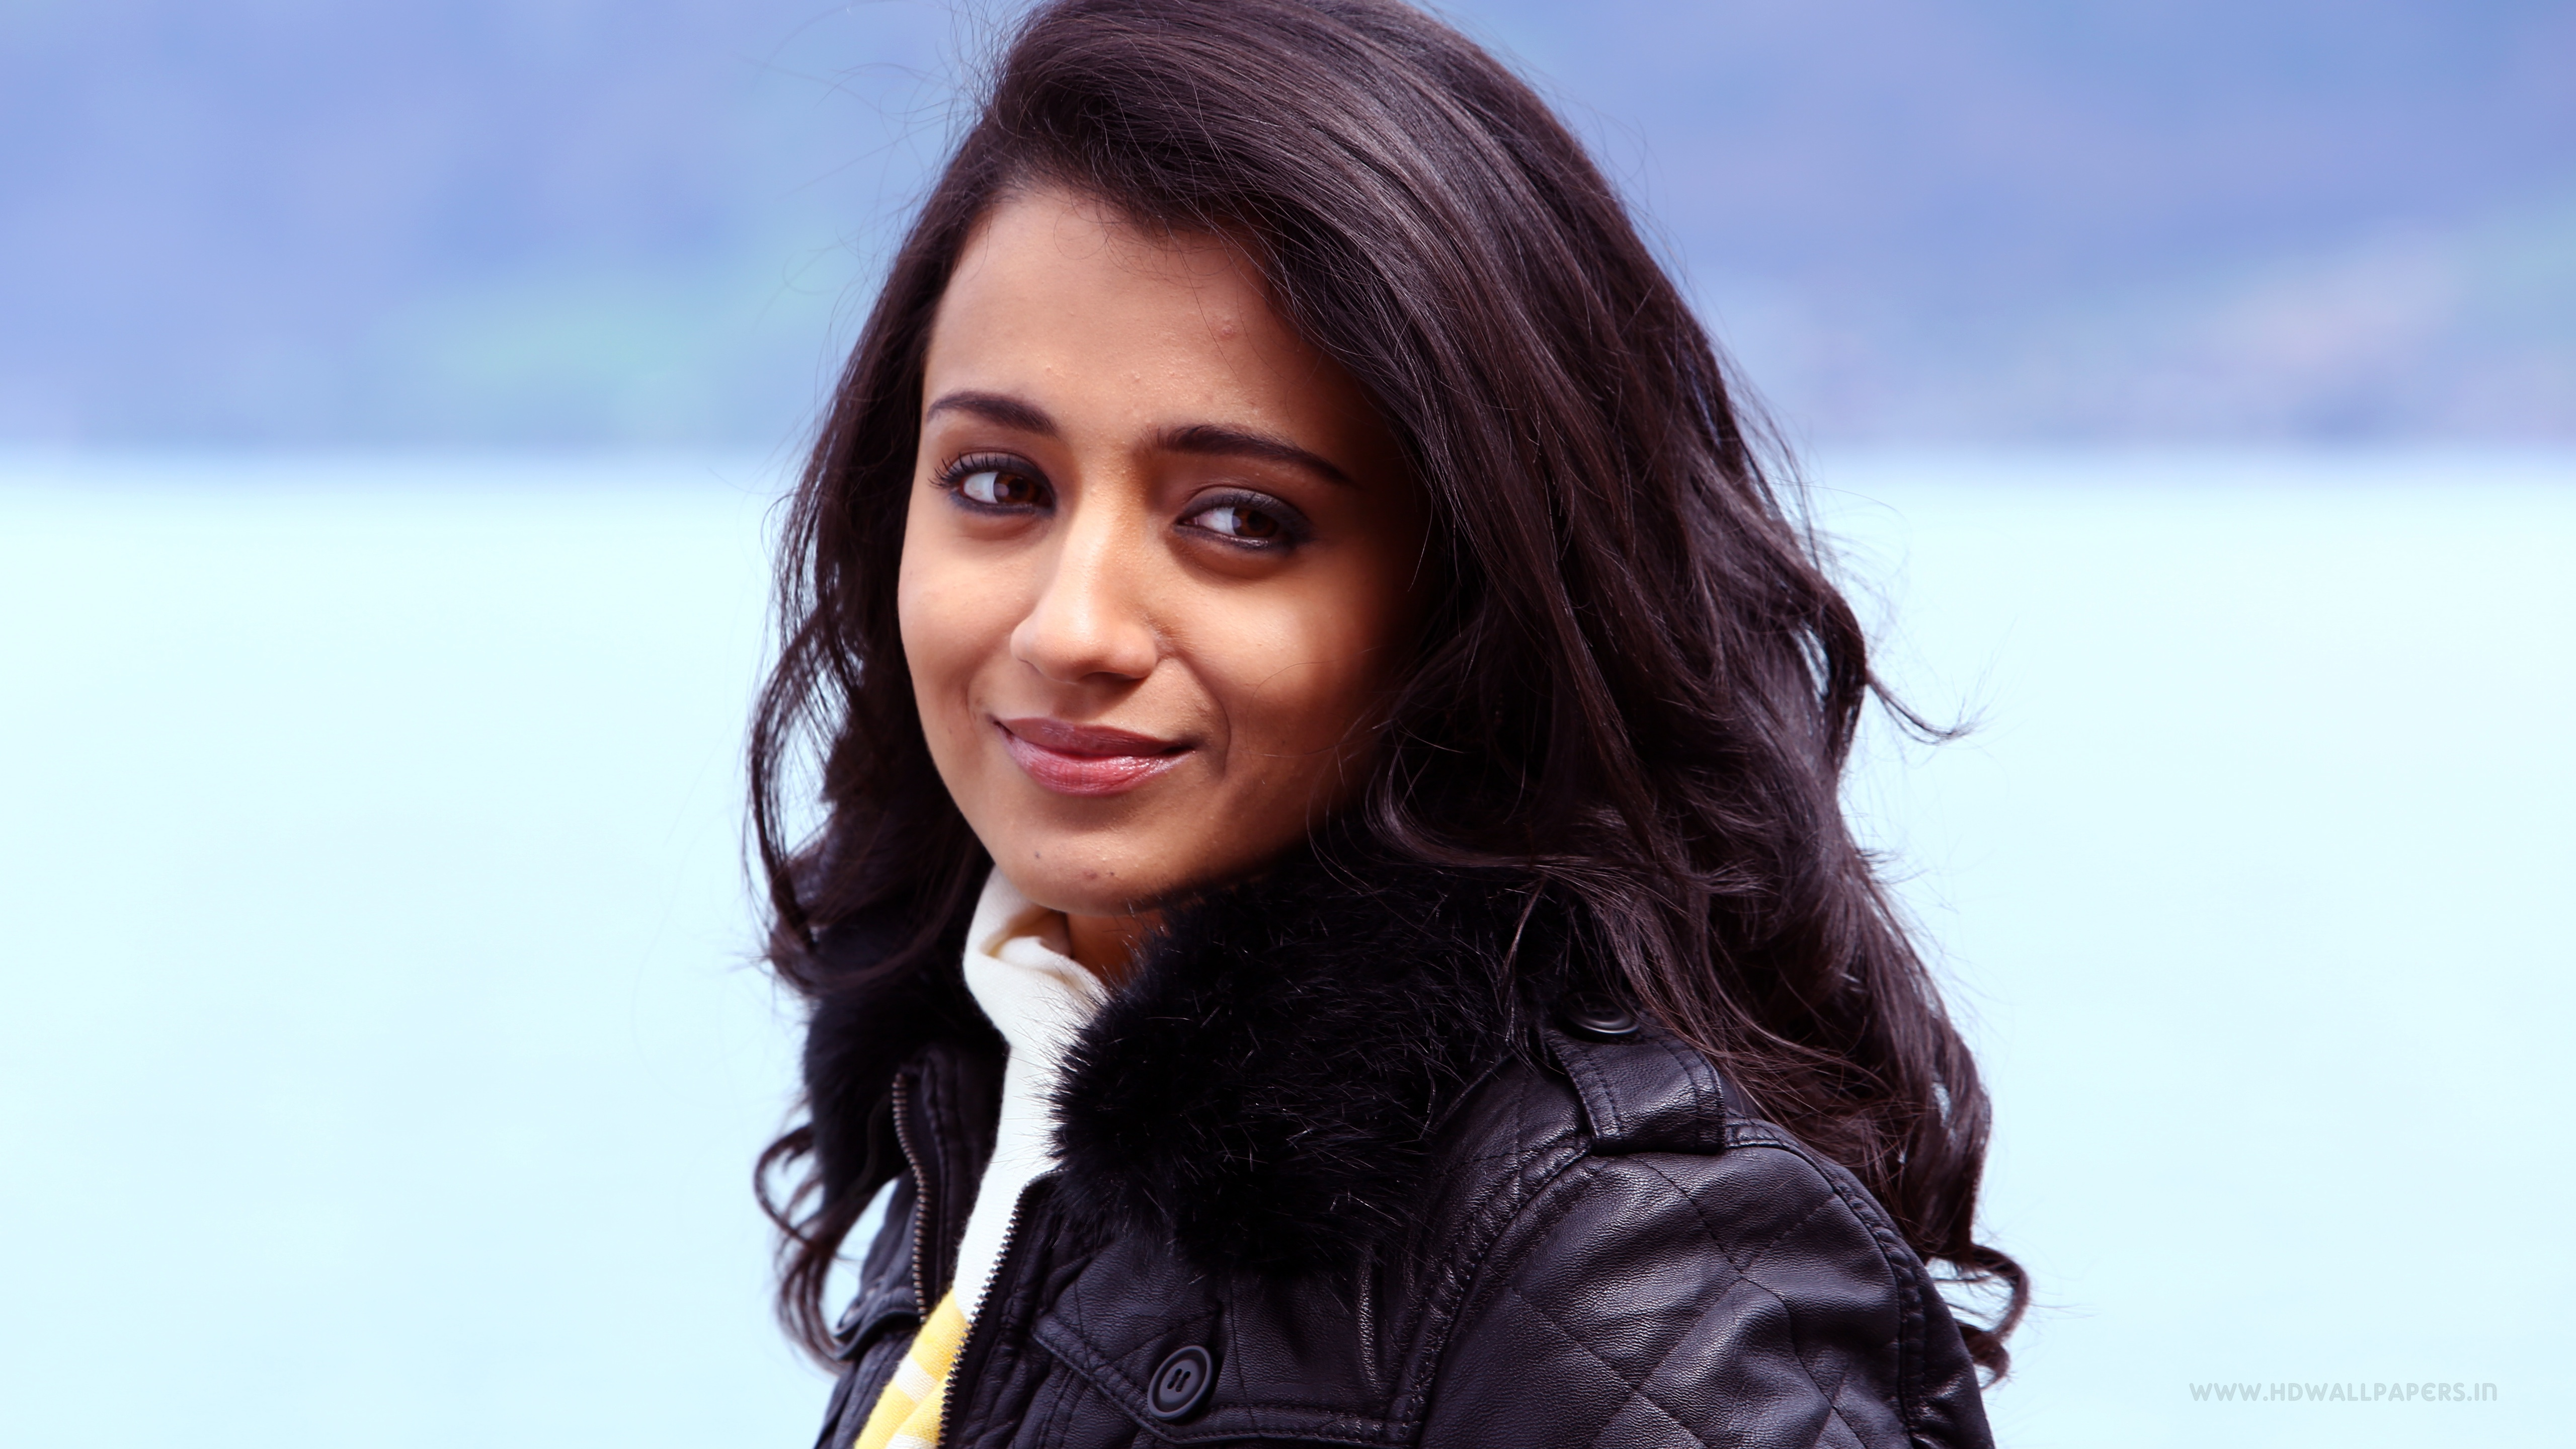 Tamil hot actress picture high definition amazing cool apple mac.